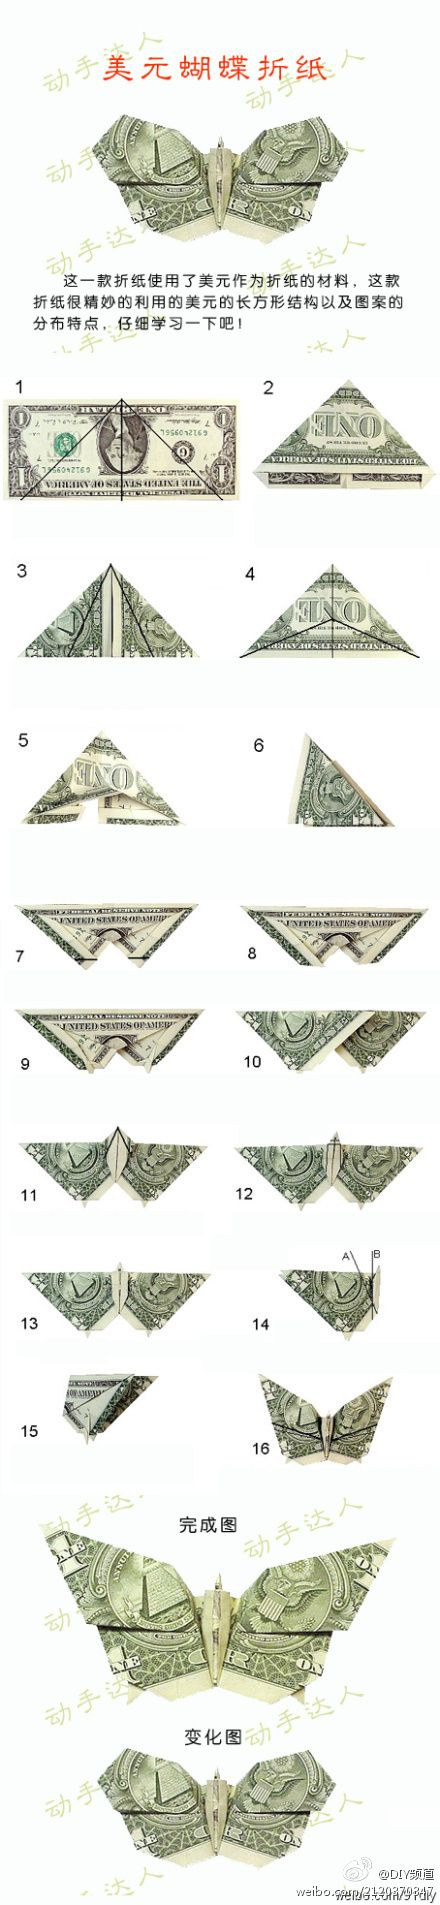 Most popular tags for this image include: origami butterfly, origami instructions and dollar bill butterfly